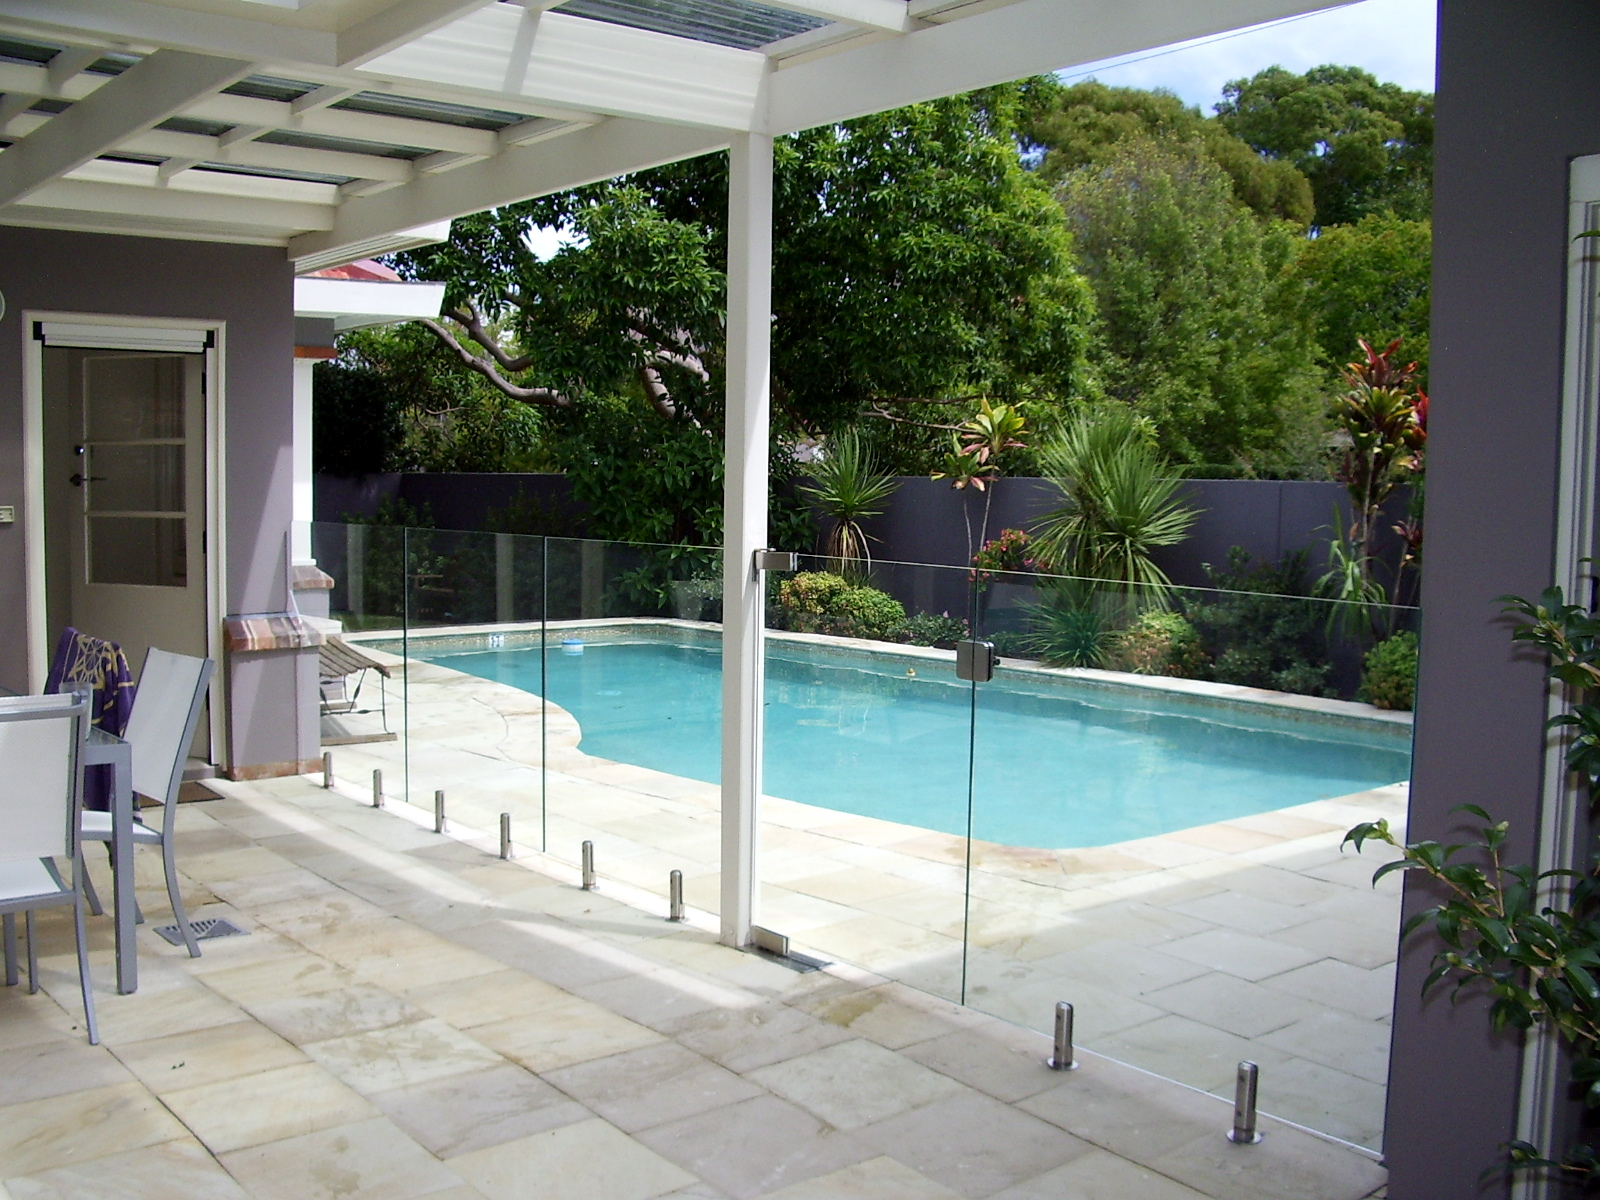 Swimming Pool Fence Ideas Images : Rickyhil Outdoor Ideas - Swimming ...